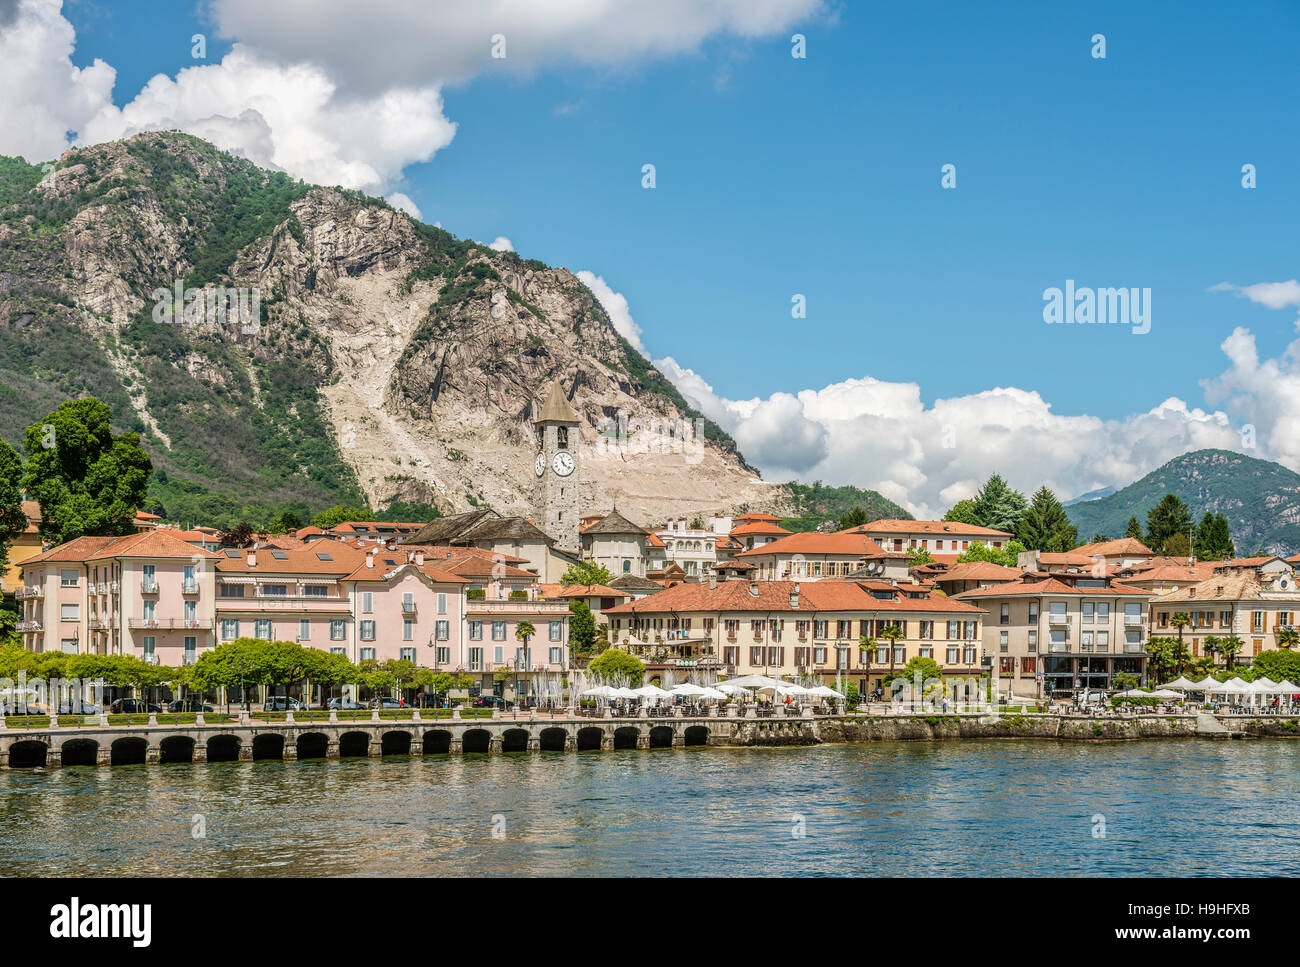 baveno lago maggiore italy stock photos baveno lago. Black Bedroom Furniture Sets. Home Design Ideas